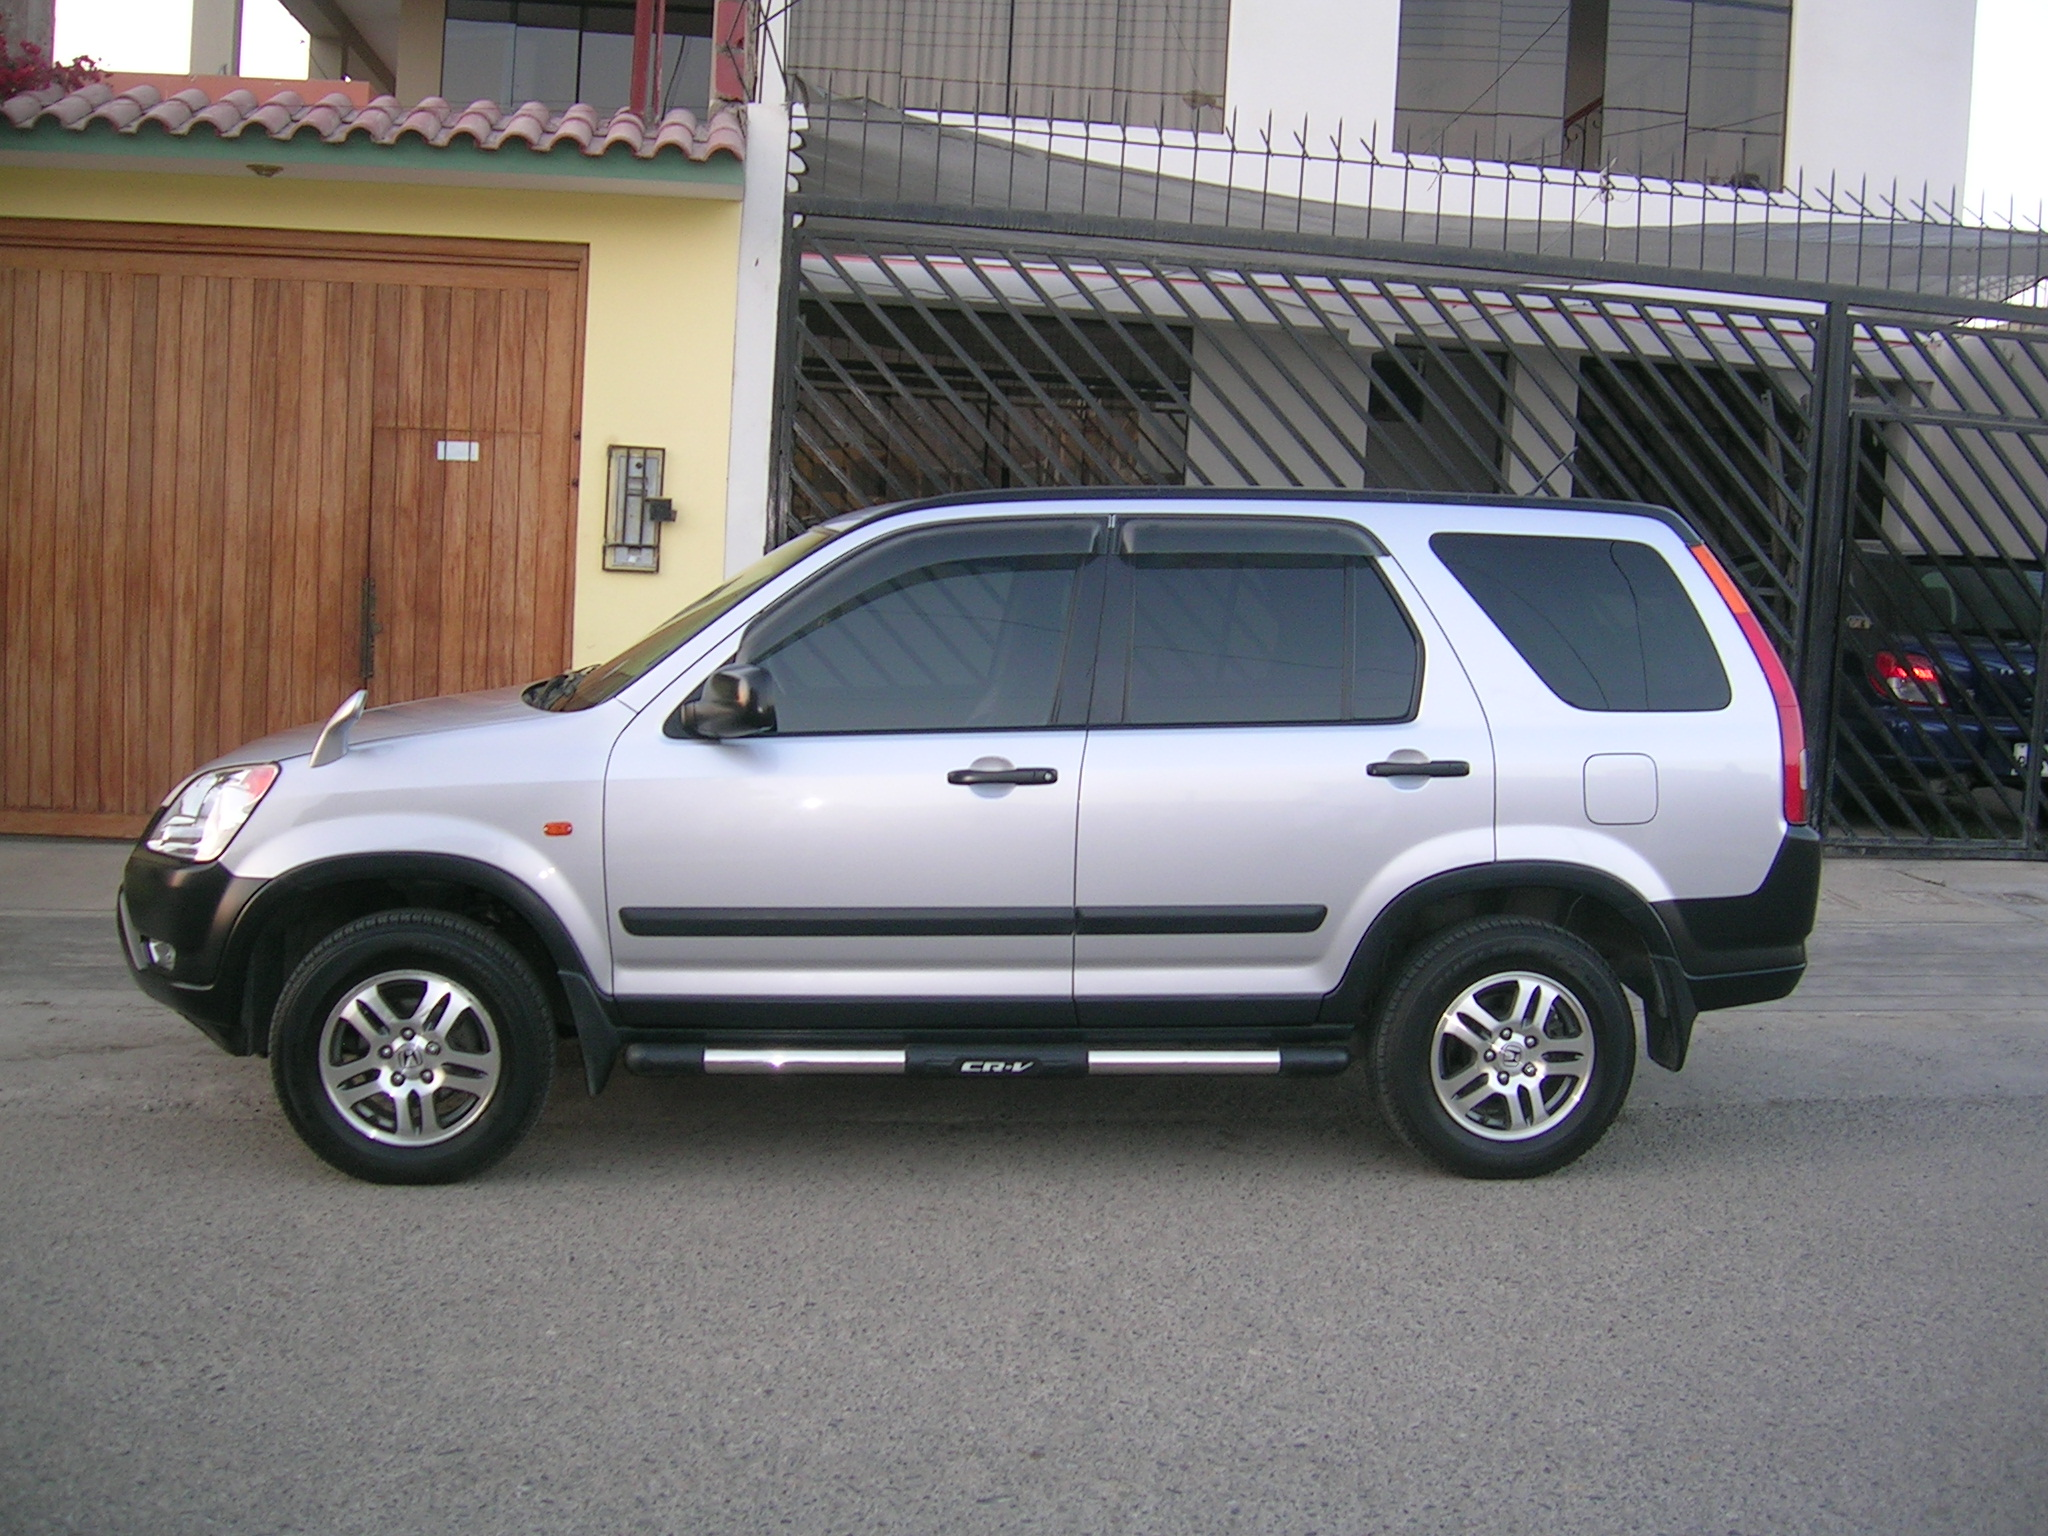 2002 Honda CRV Information and photos MOMENTcar